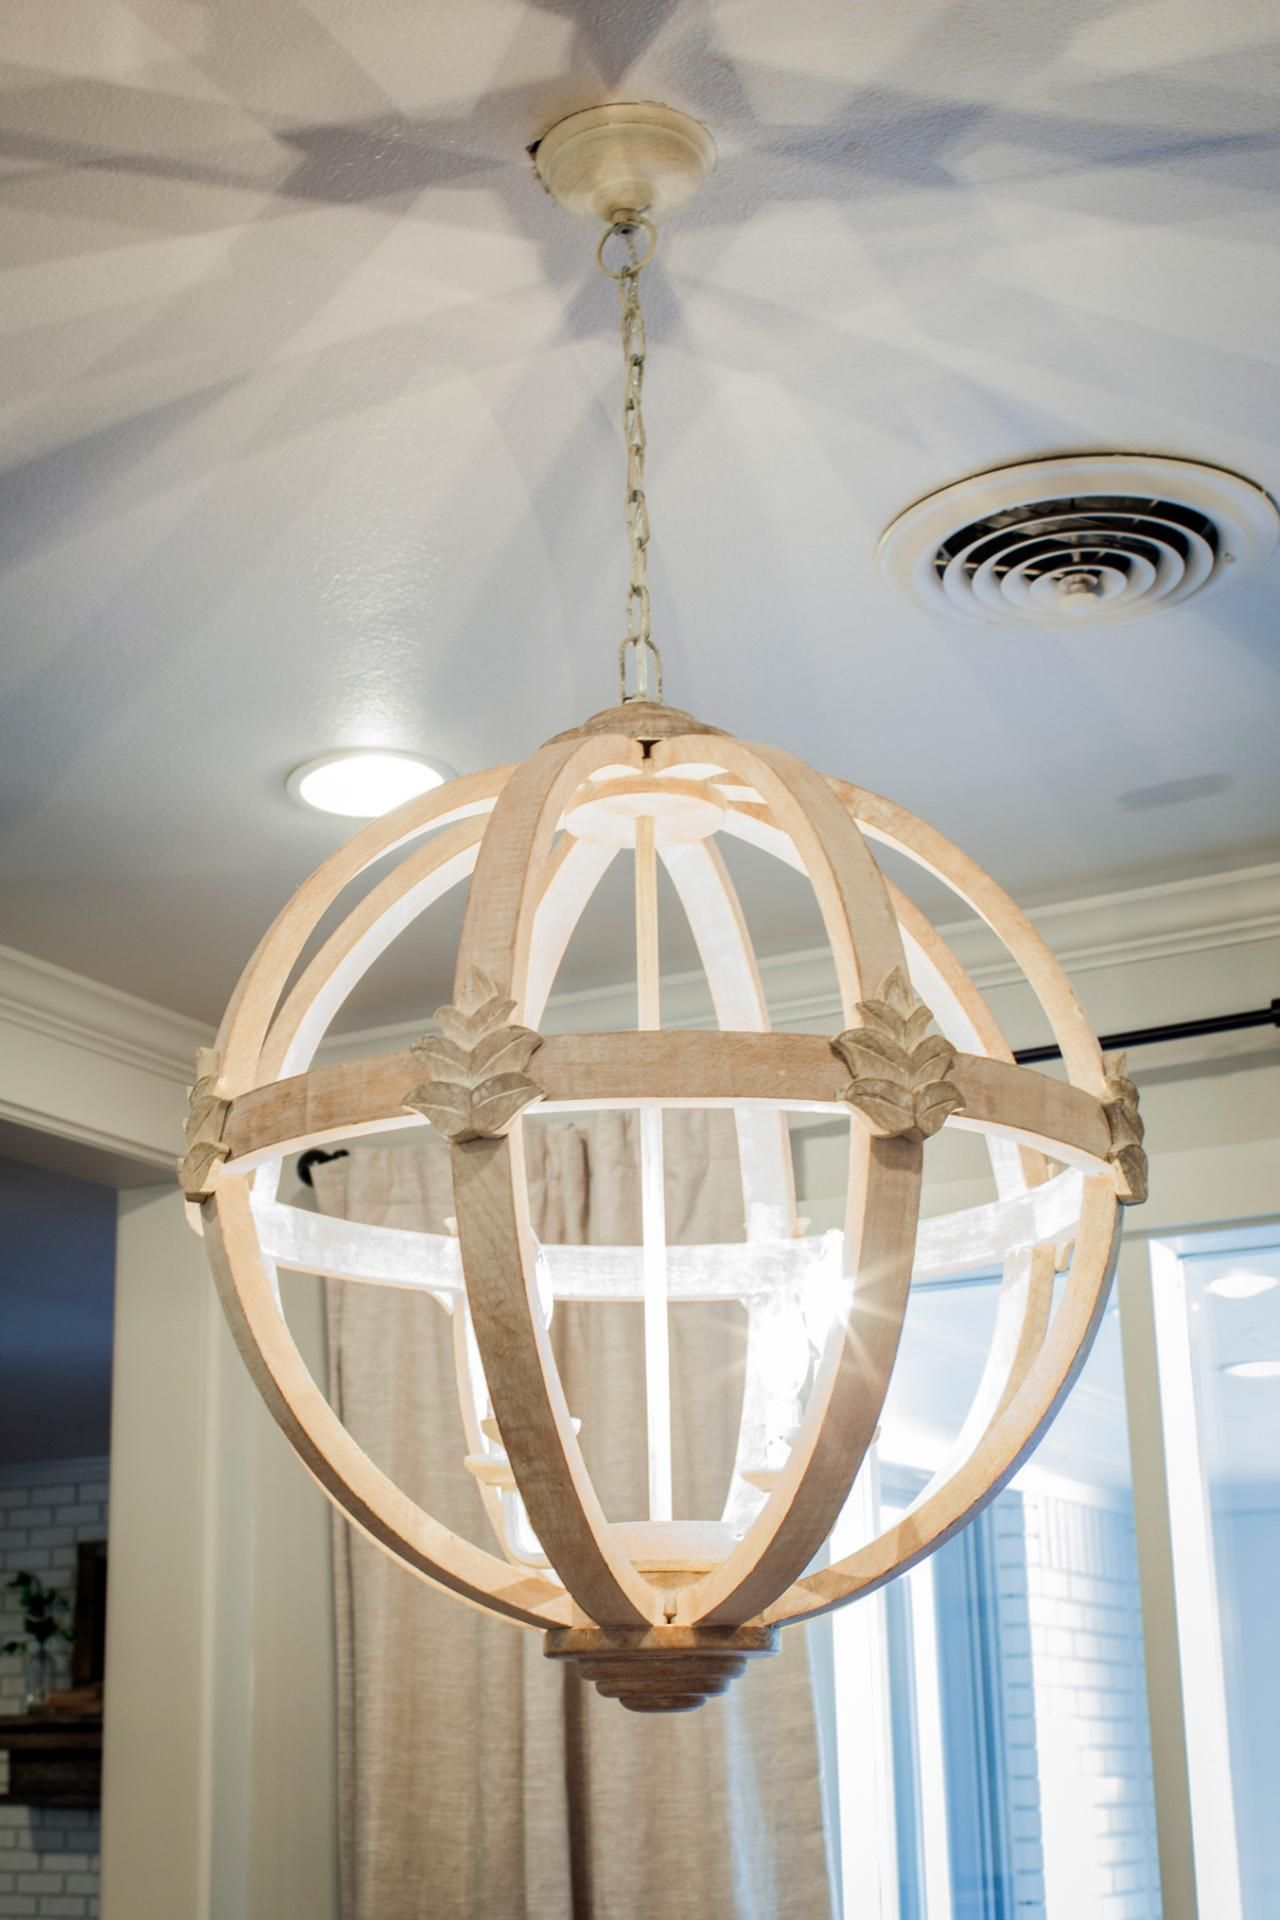 White washed wood sphere chandelier chandeliers by shades of light - Bp_hfxup213h_reed_breakfast Nook_detail_chandelier_167308_530980 1088373 Jpg Rend Hgtvcom 1280 1920